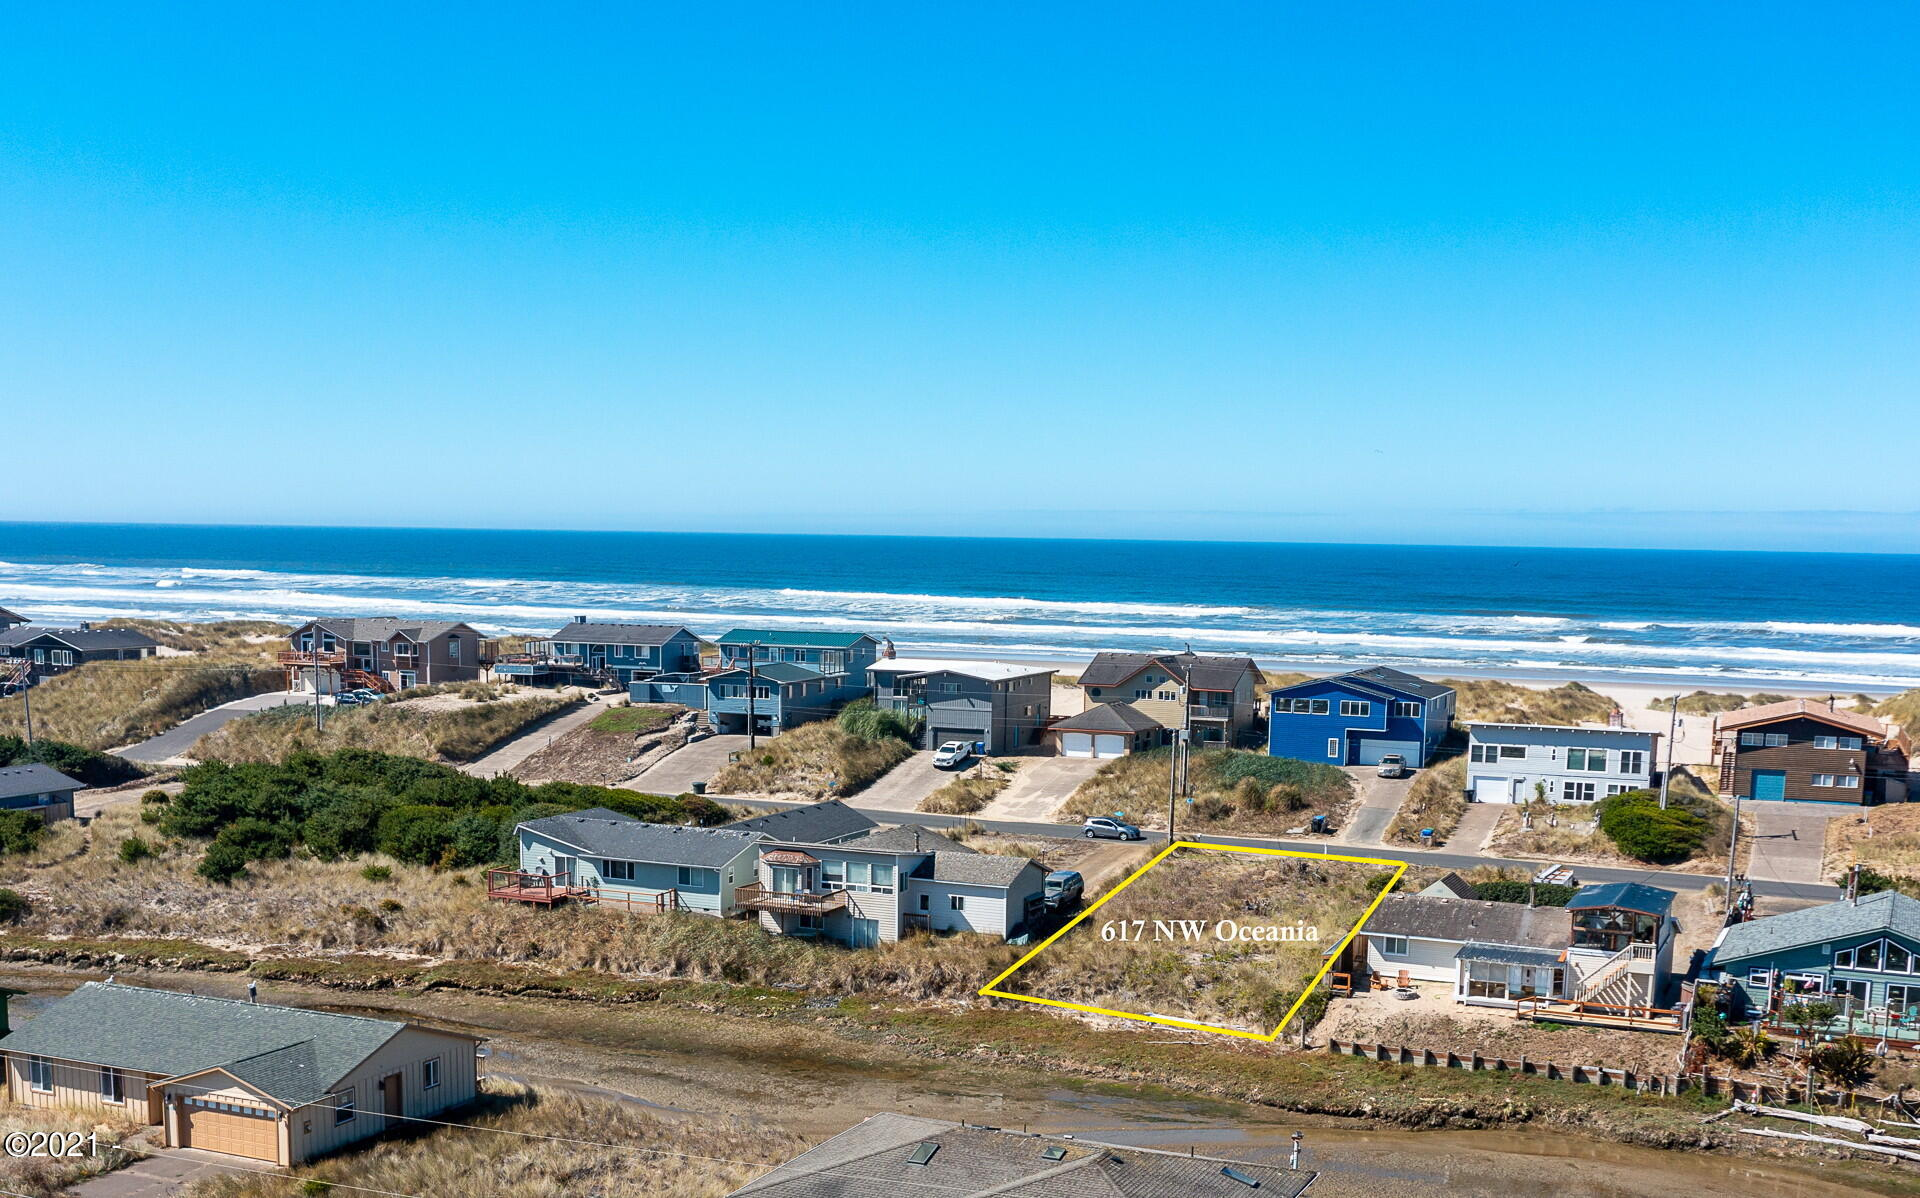 617 NW Oceania Dr, Waldport, OR 97394